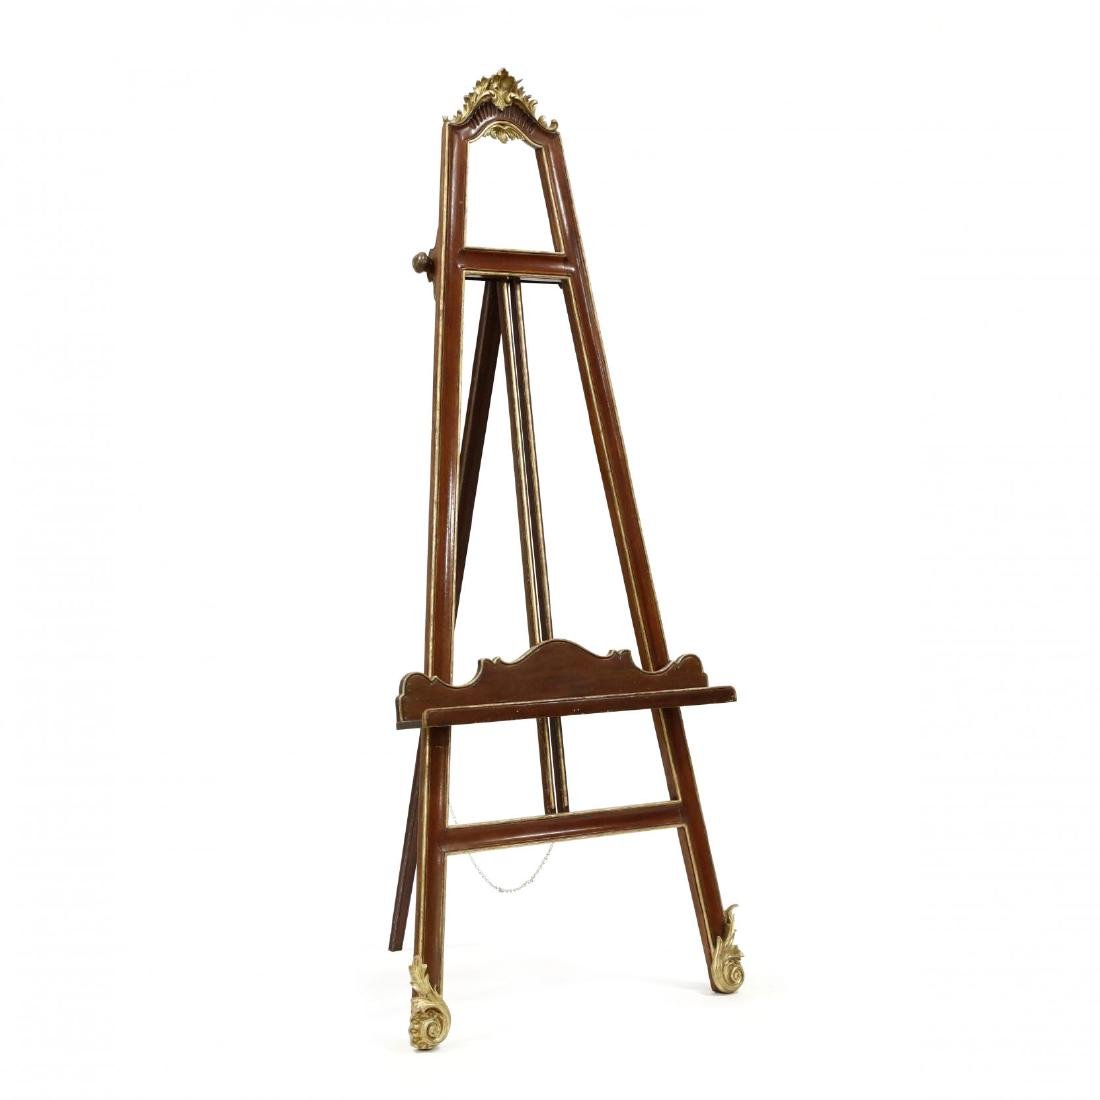 French Rococo Style Carved and Gilt Easel